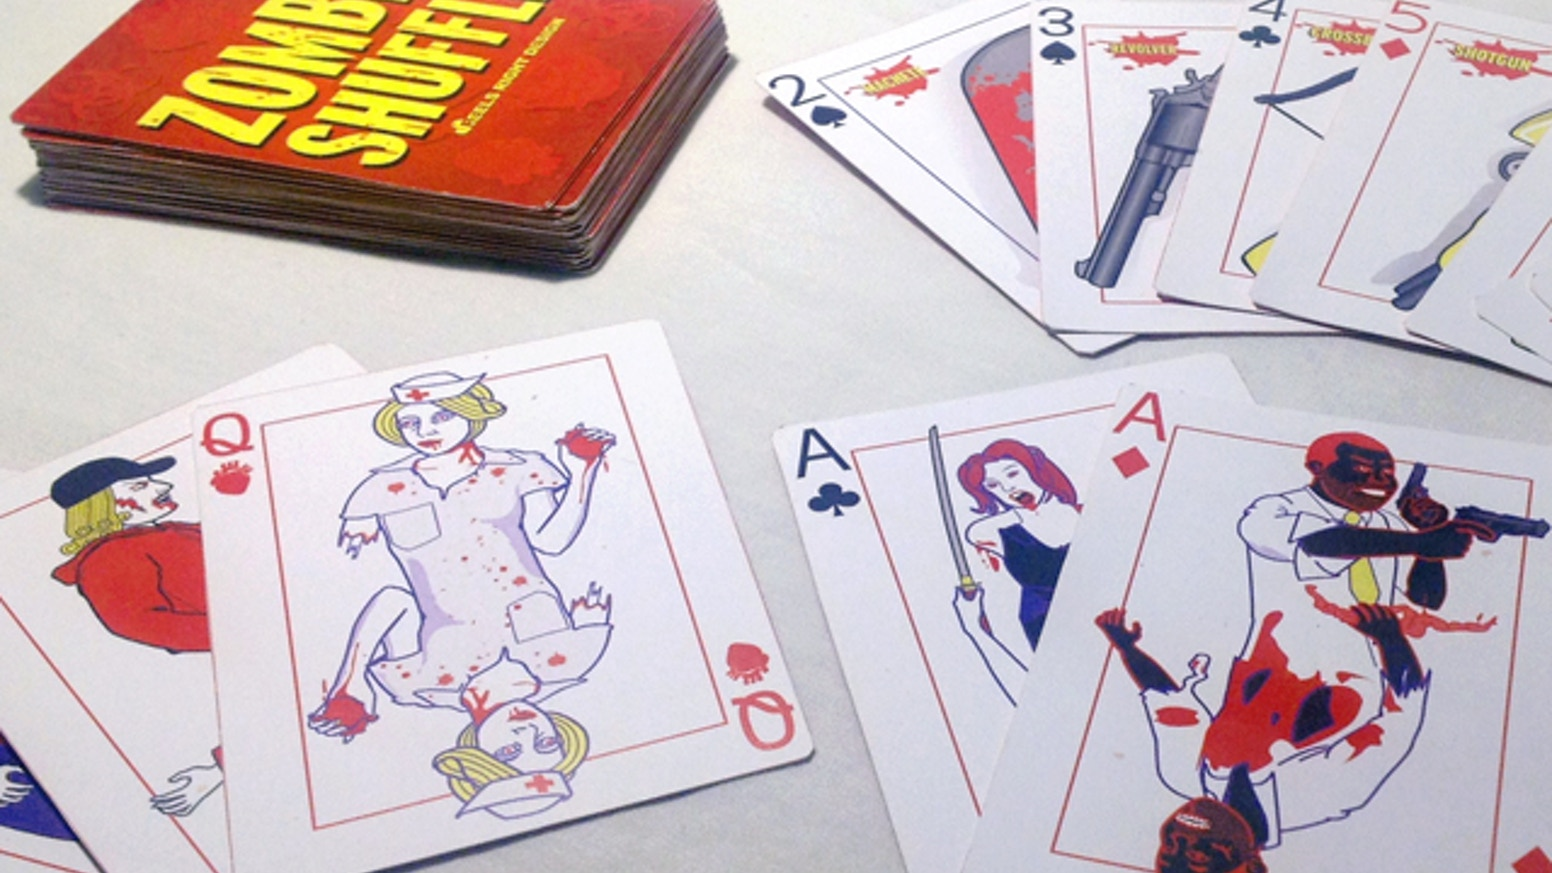 A Zombie Card Game Built Around the 52 Card Deck. Printed by the US Playing Card Company.